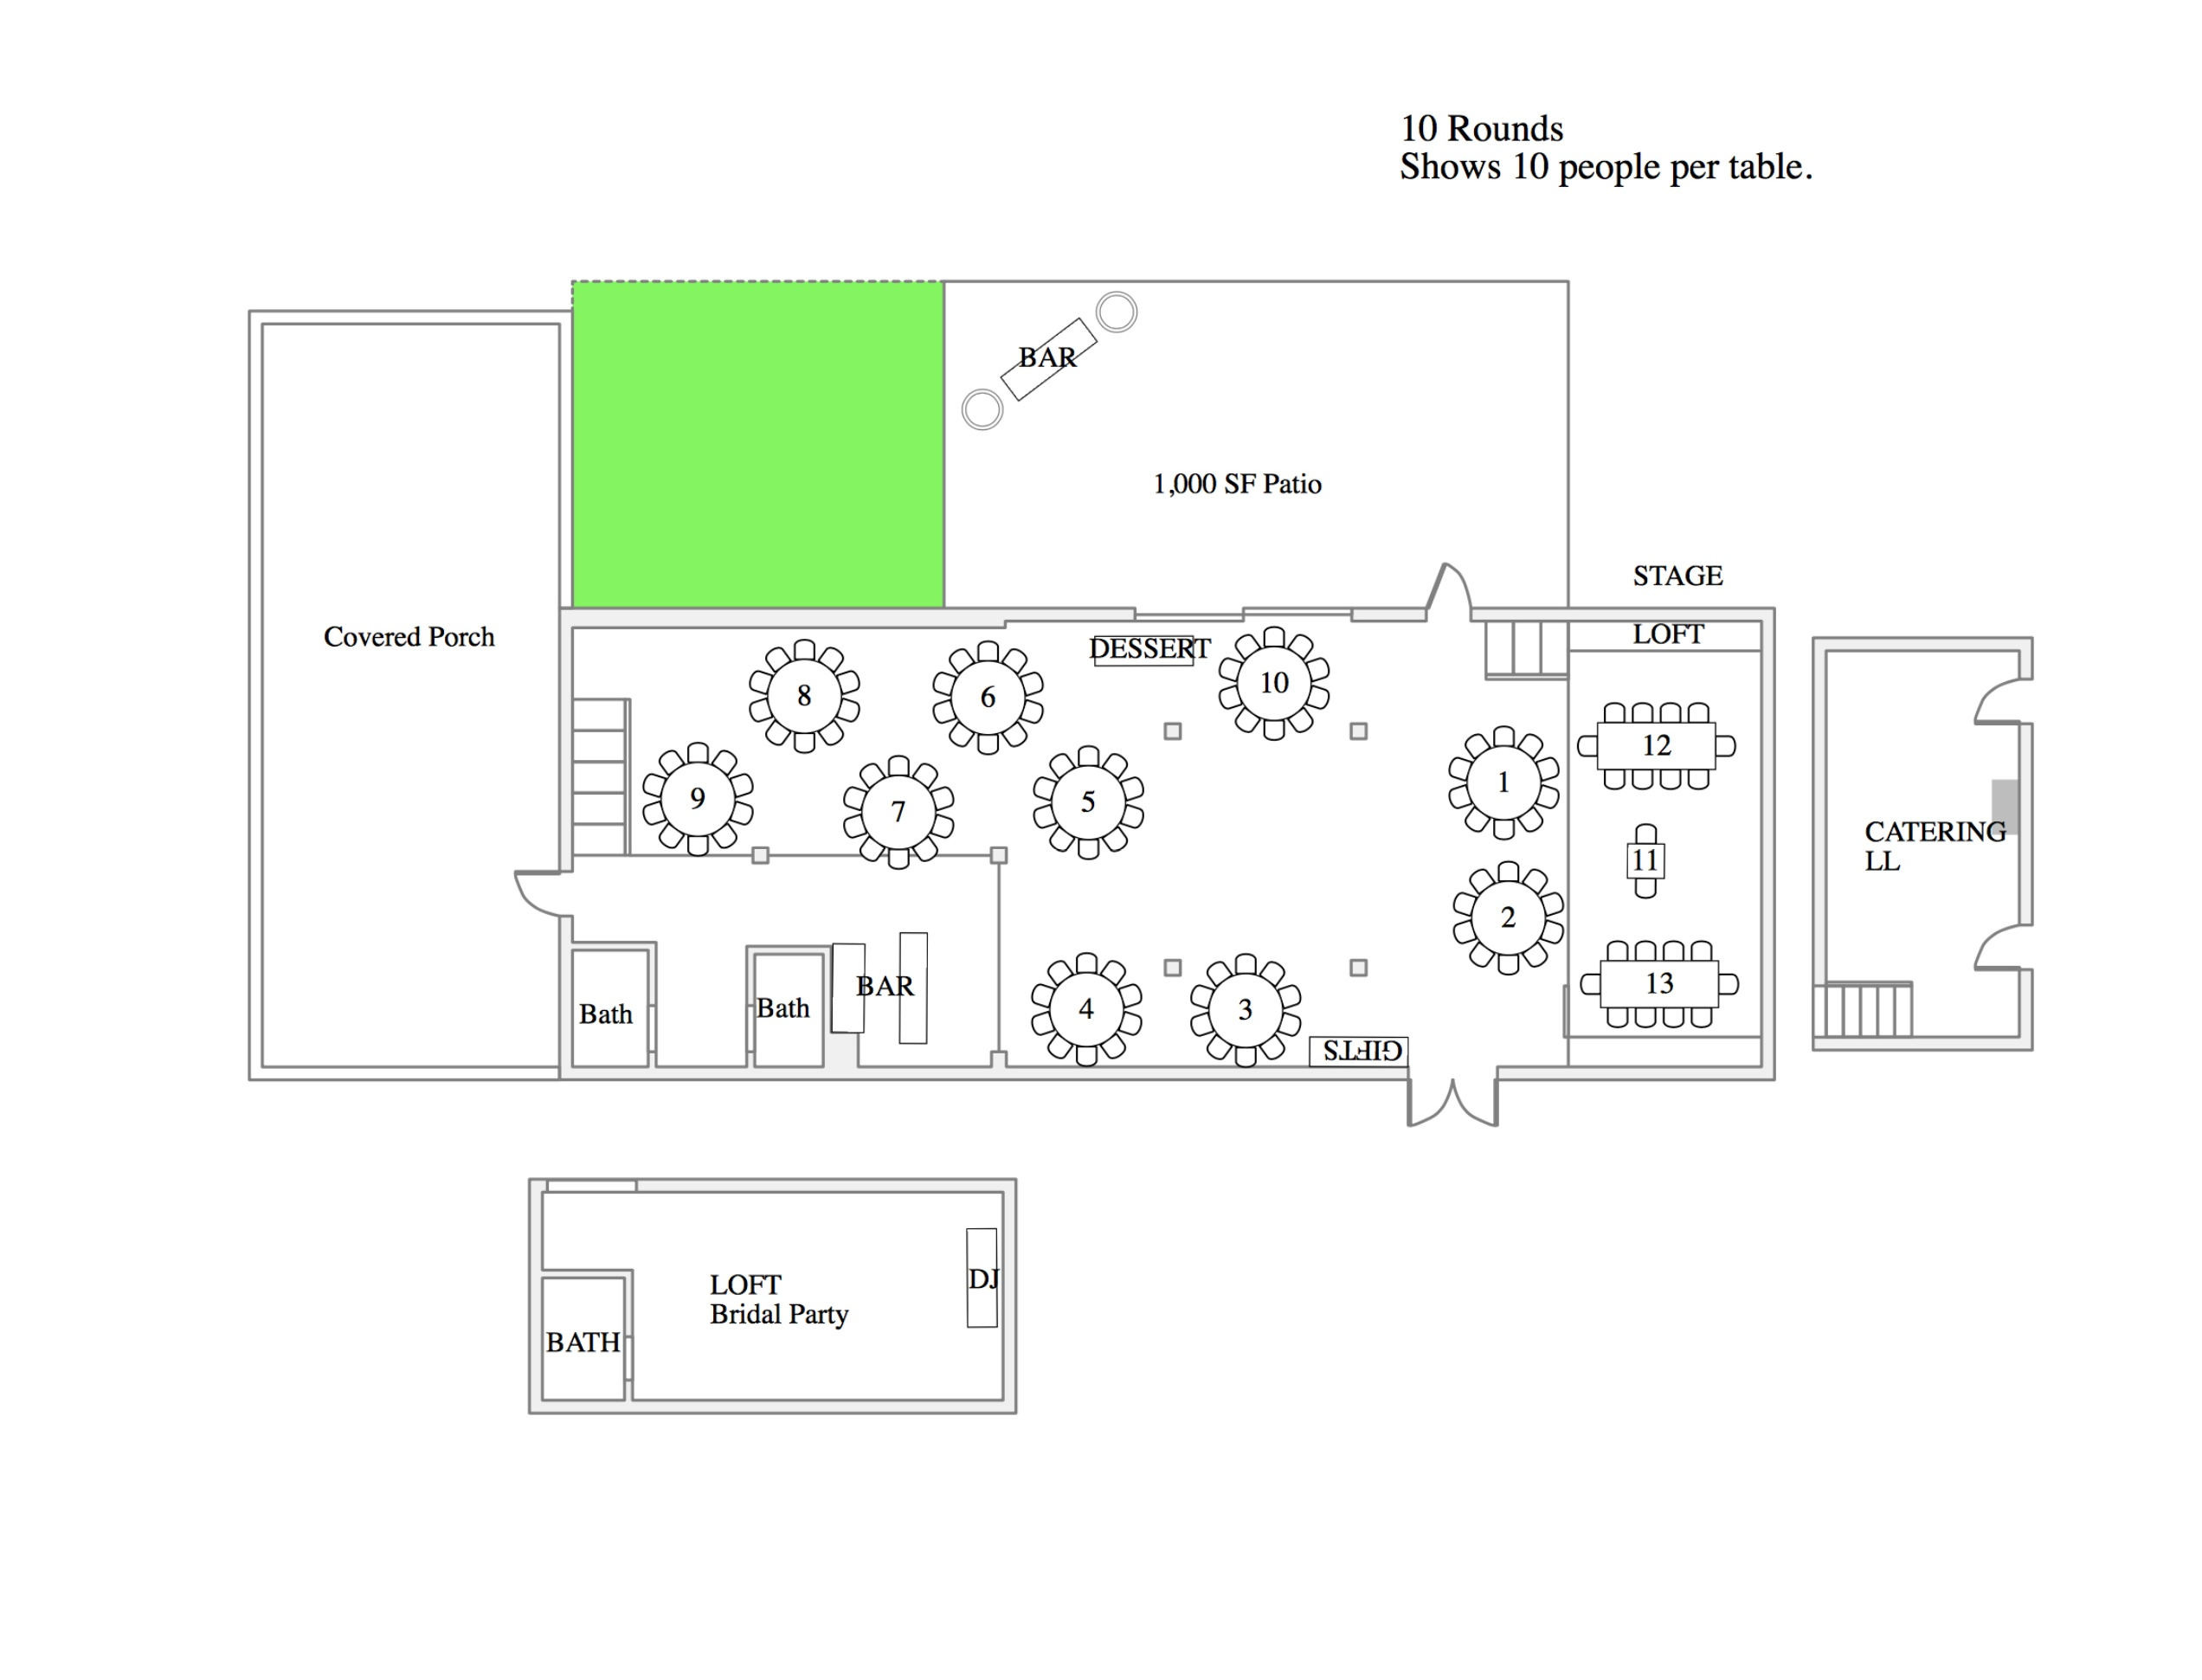 Floor plan of the barn shows seating capacity